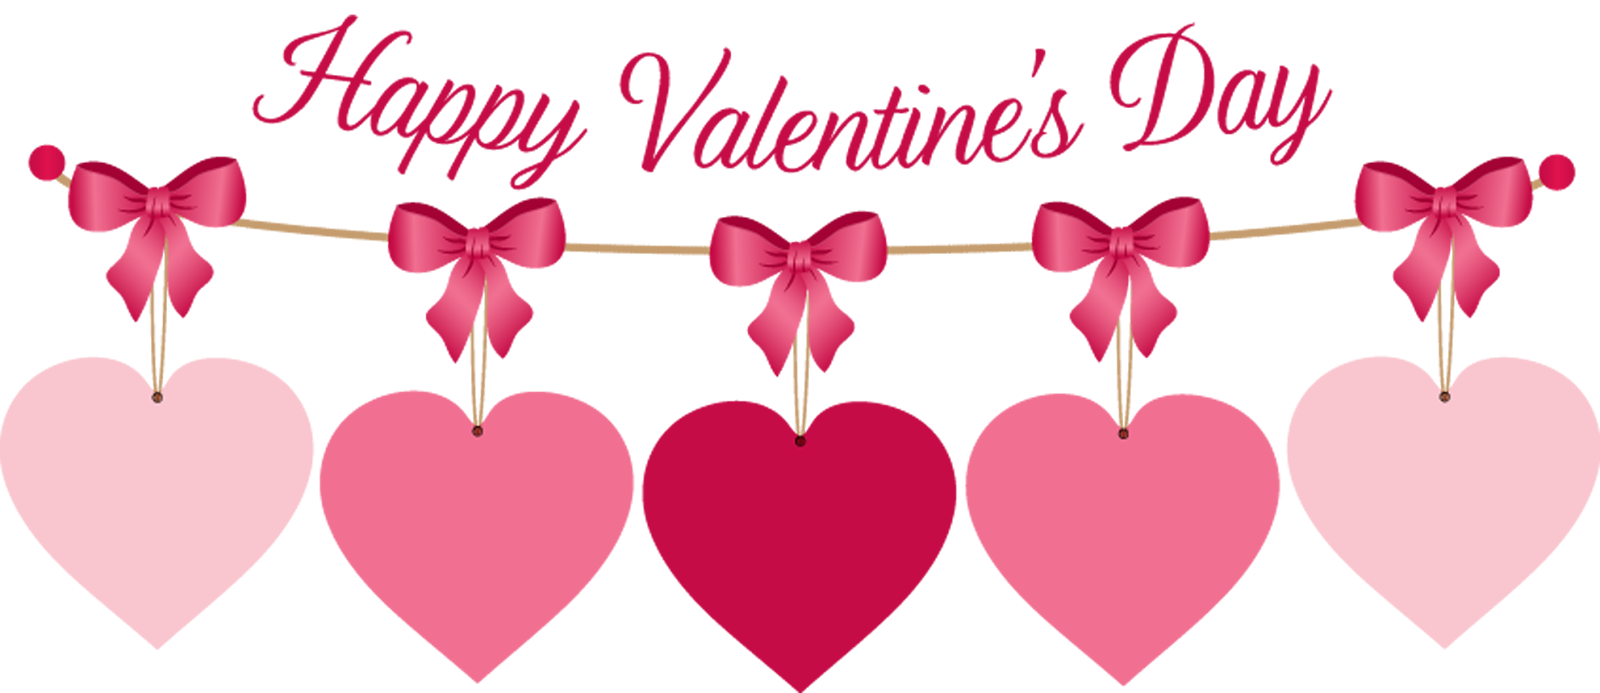 Valentines Day 2016 - Images, Quotes, Wallpaper, Wishes